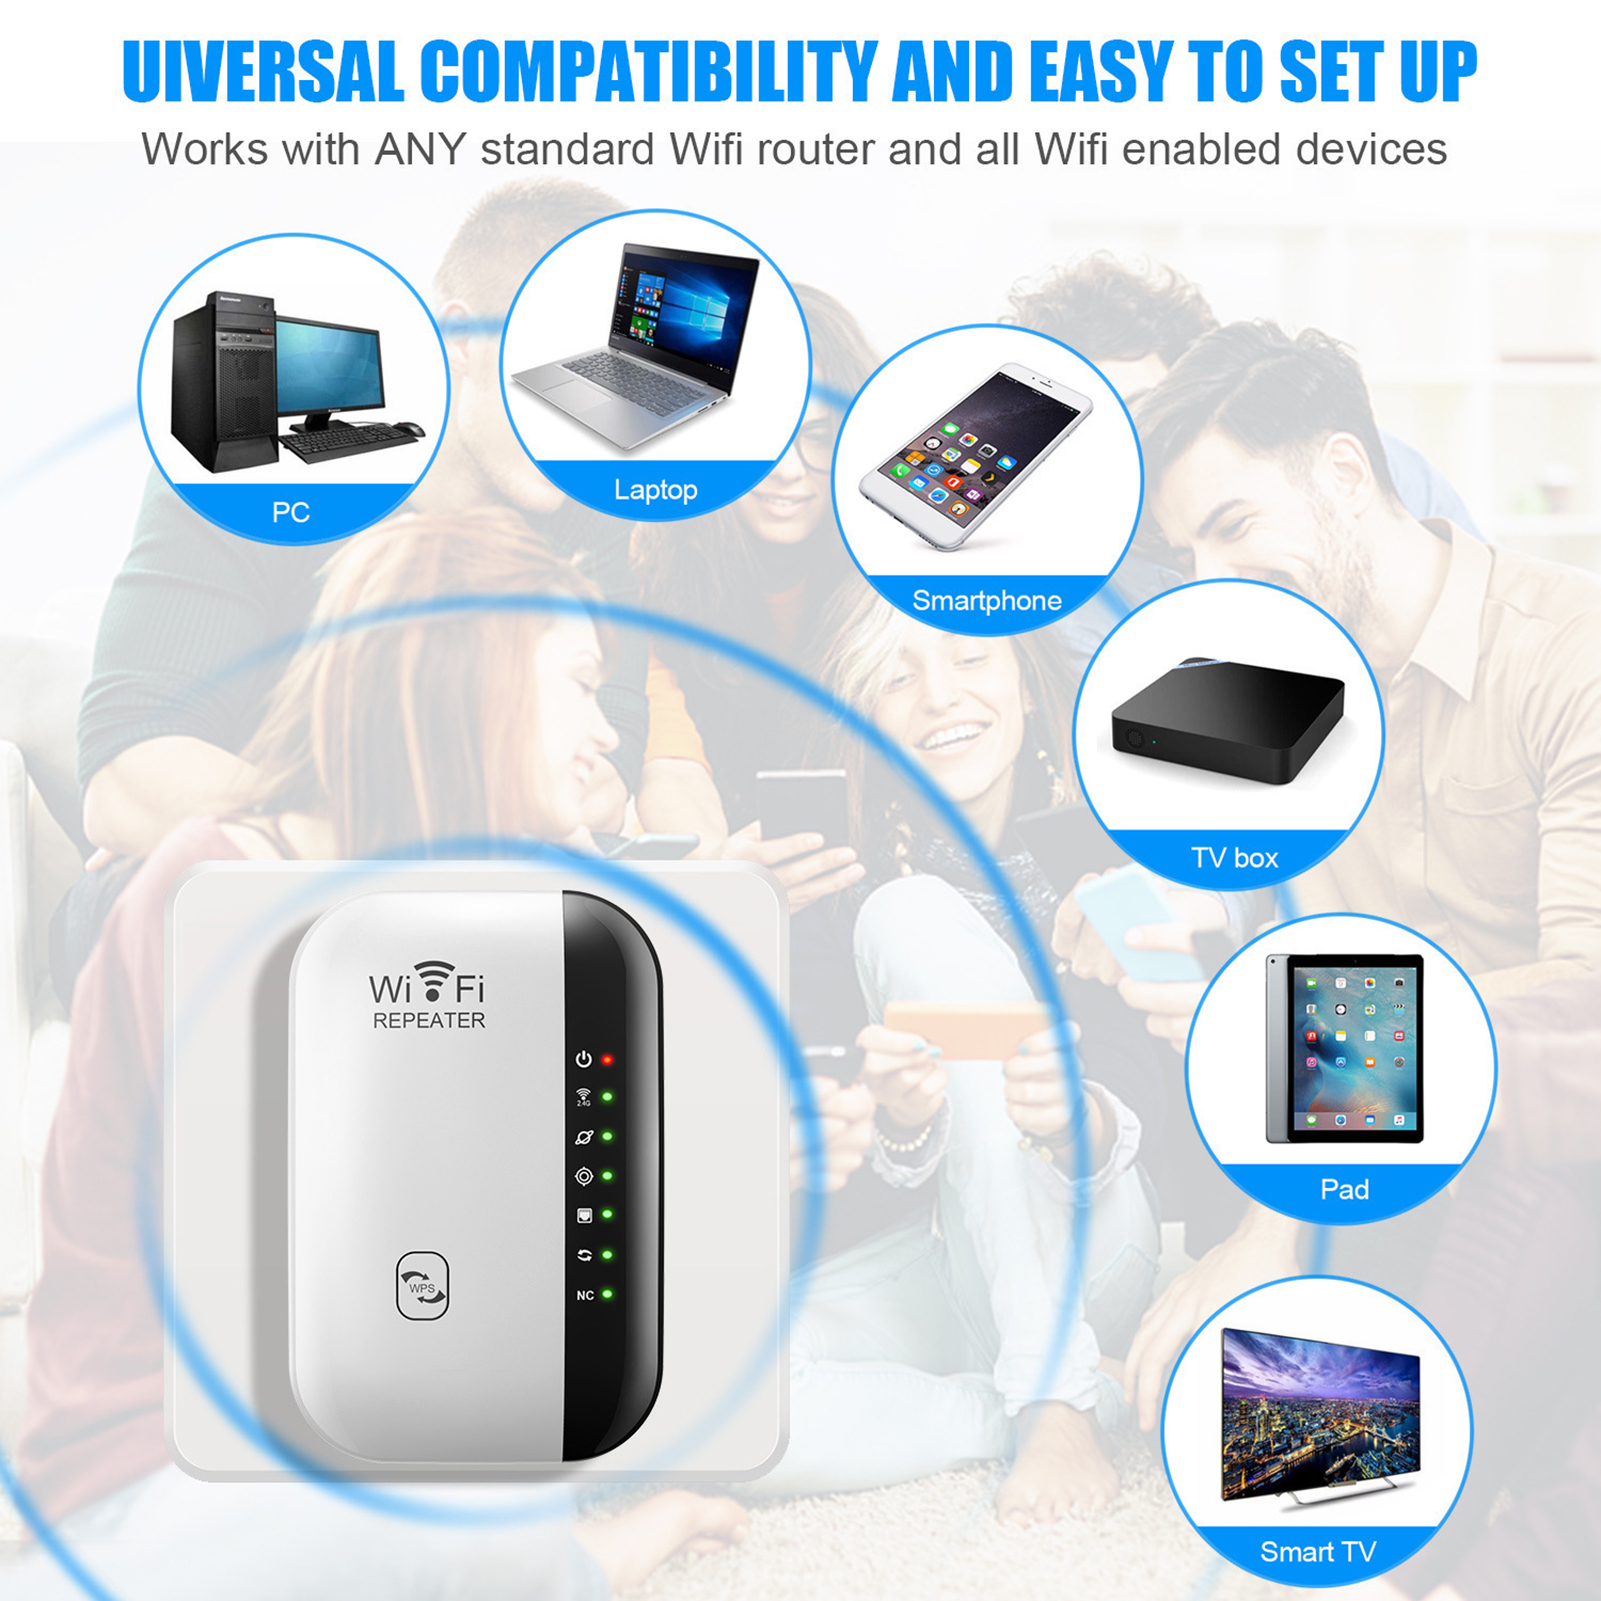 Wireless Wifi Repeater Wi-Fi Range Extender Router Wi Fi Signal Amplifier 300Mbps WiFi Booster 2.4G Wi Fi Reapeter Access Point 5